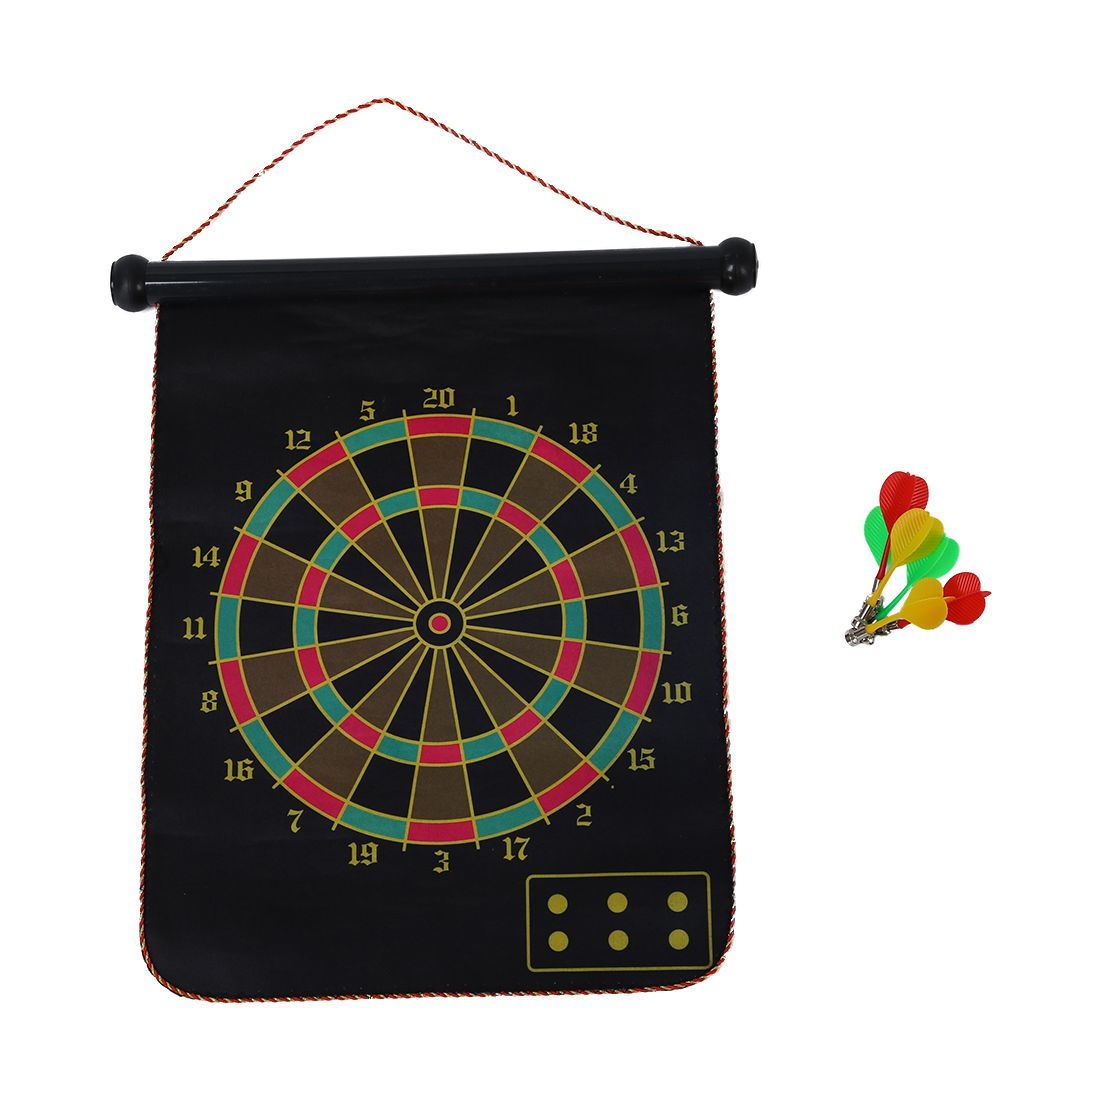 Target darts Double-sided magnetic suspended with 6 magnetic darts